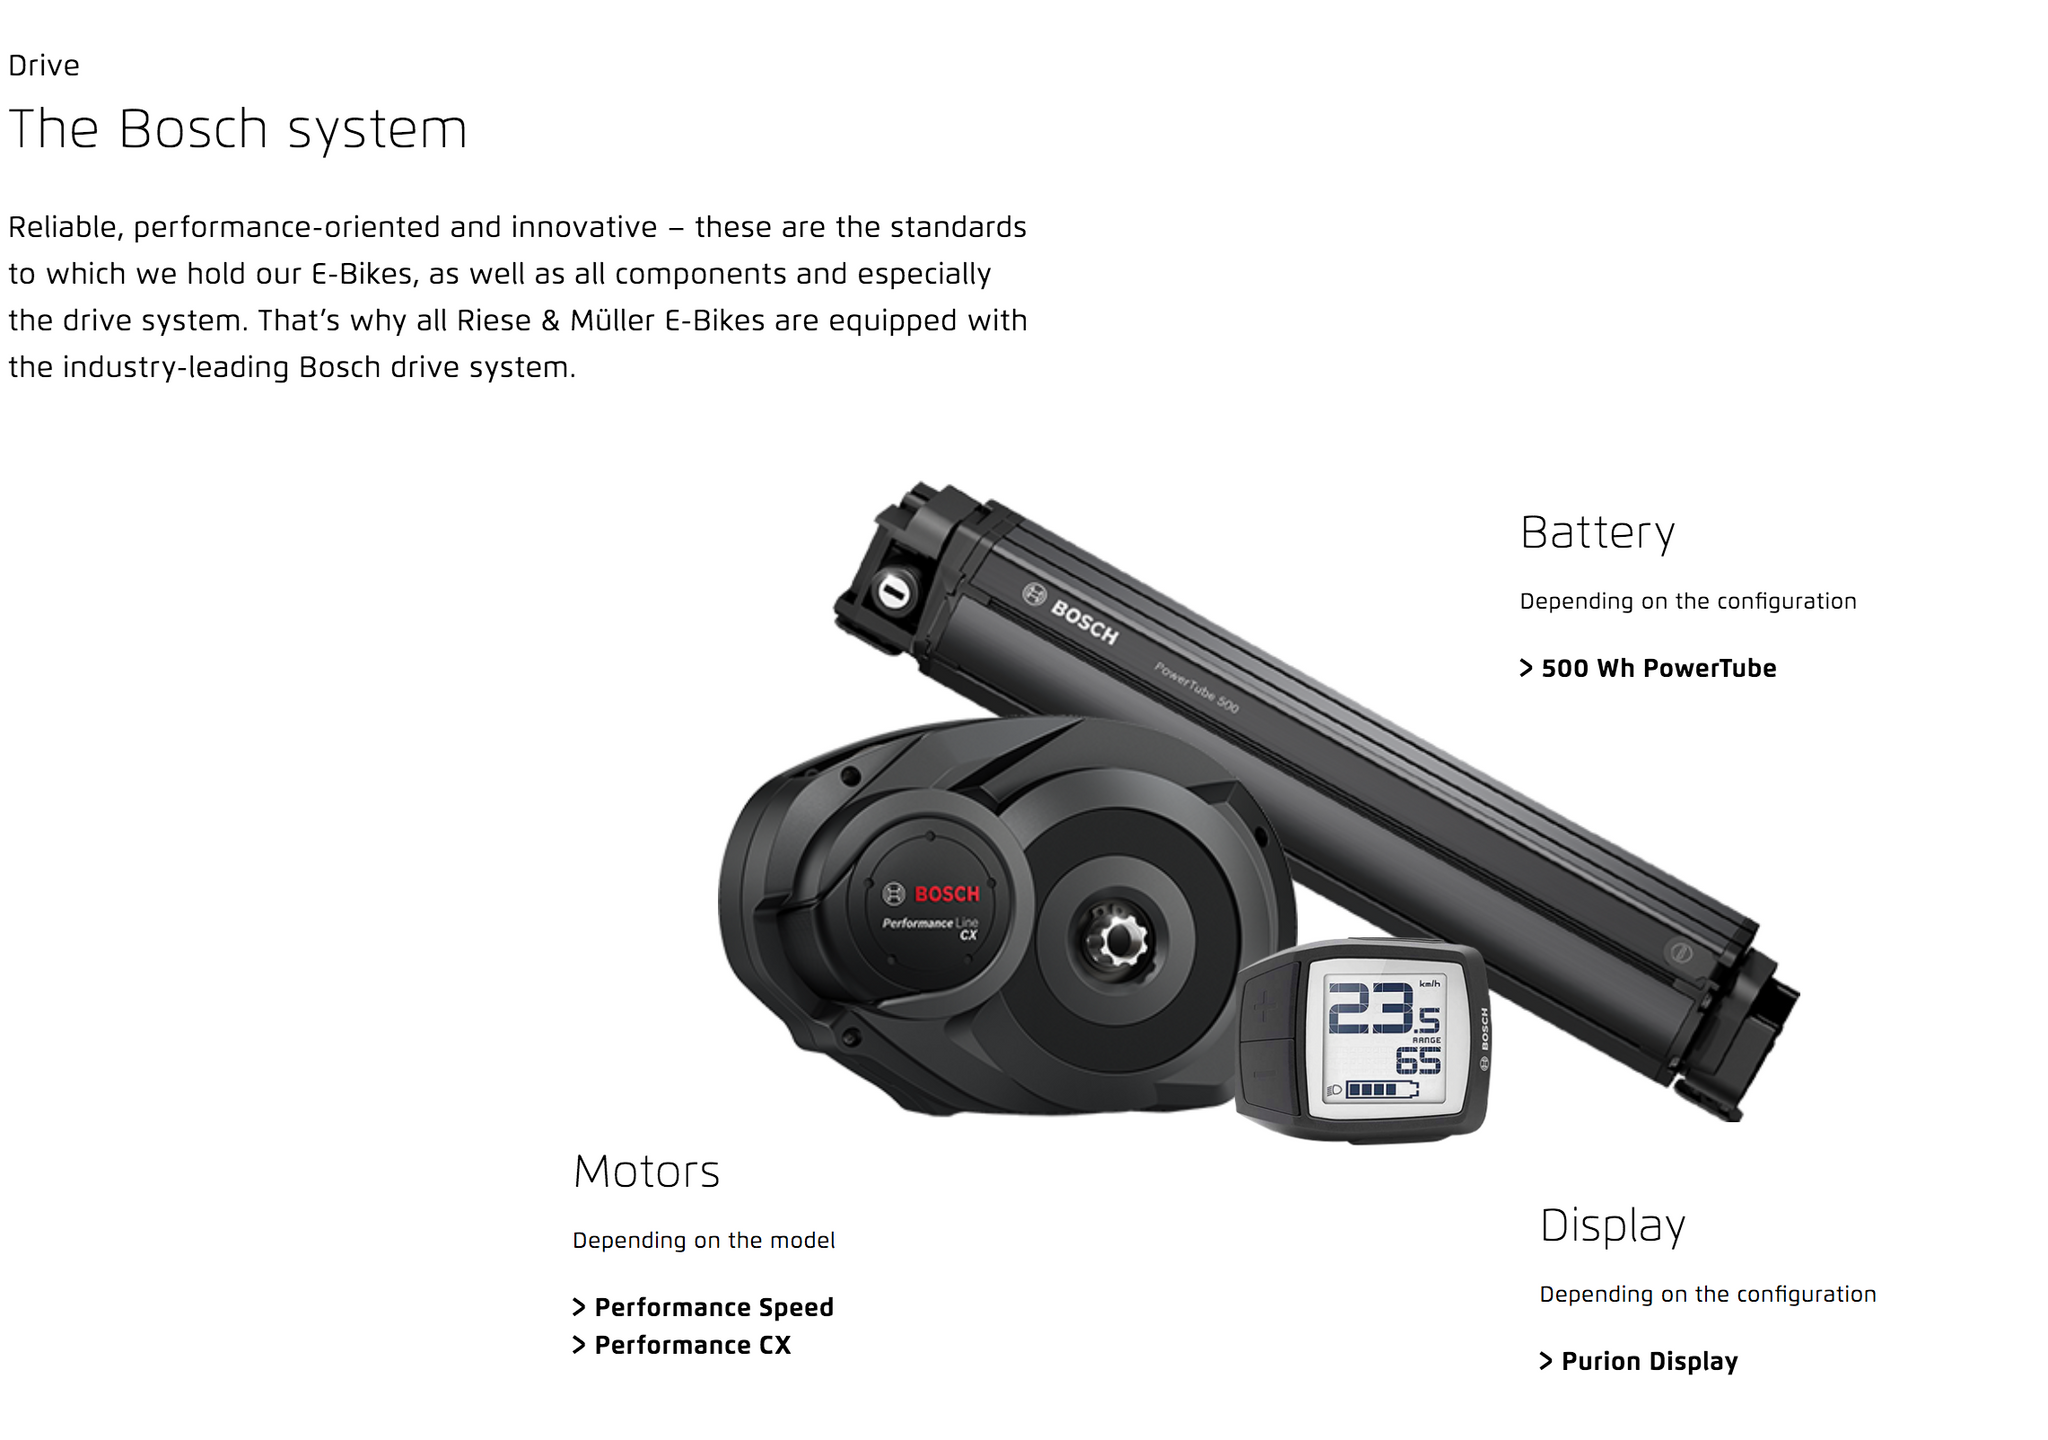 Drive  The Bosch system Reliable, performance-oriented and innovative – these are the standards to which we hold our E-Bikes, as well as all components and especially the drive system. That's why all Riese & Müller E-Bikes are equipped with the industry-leading Bosch drive system.